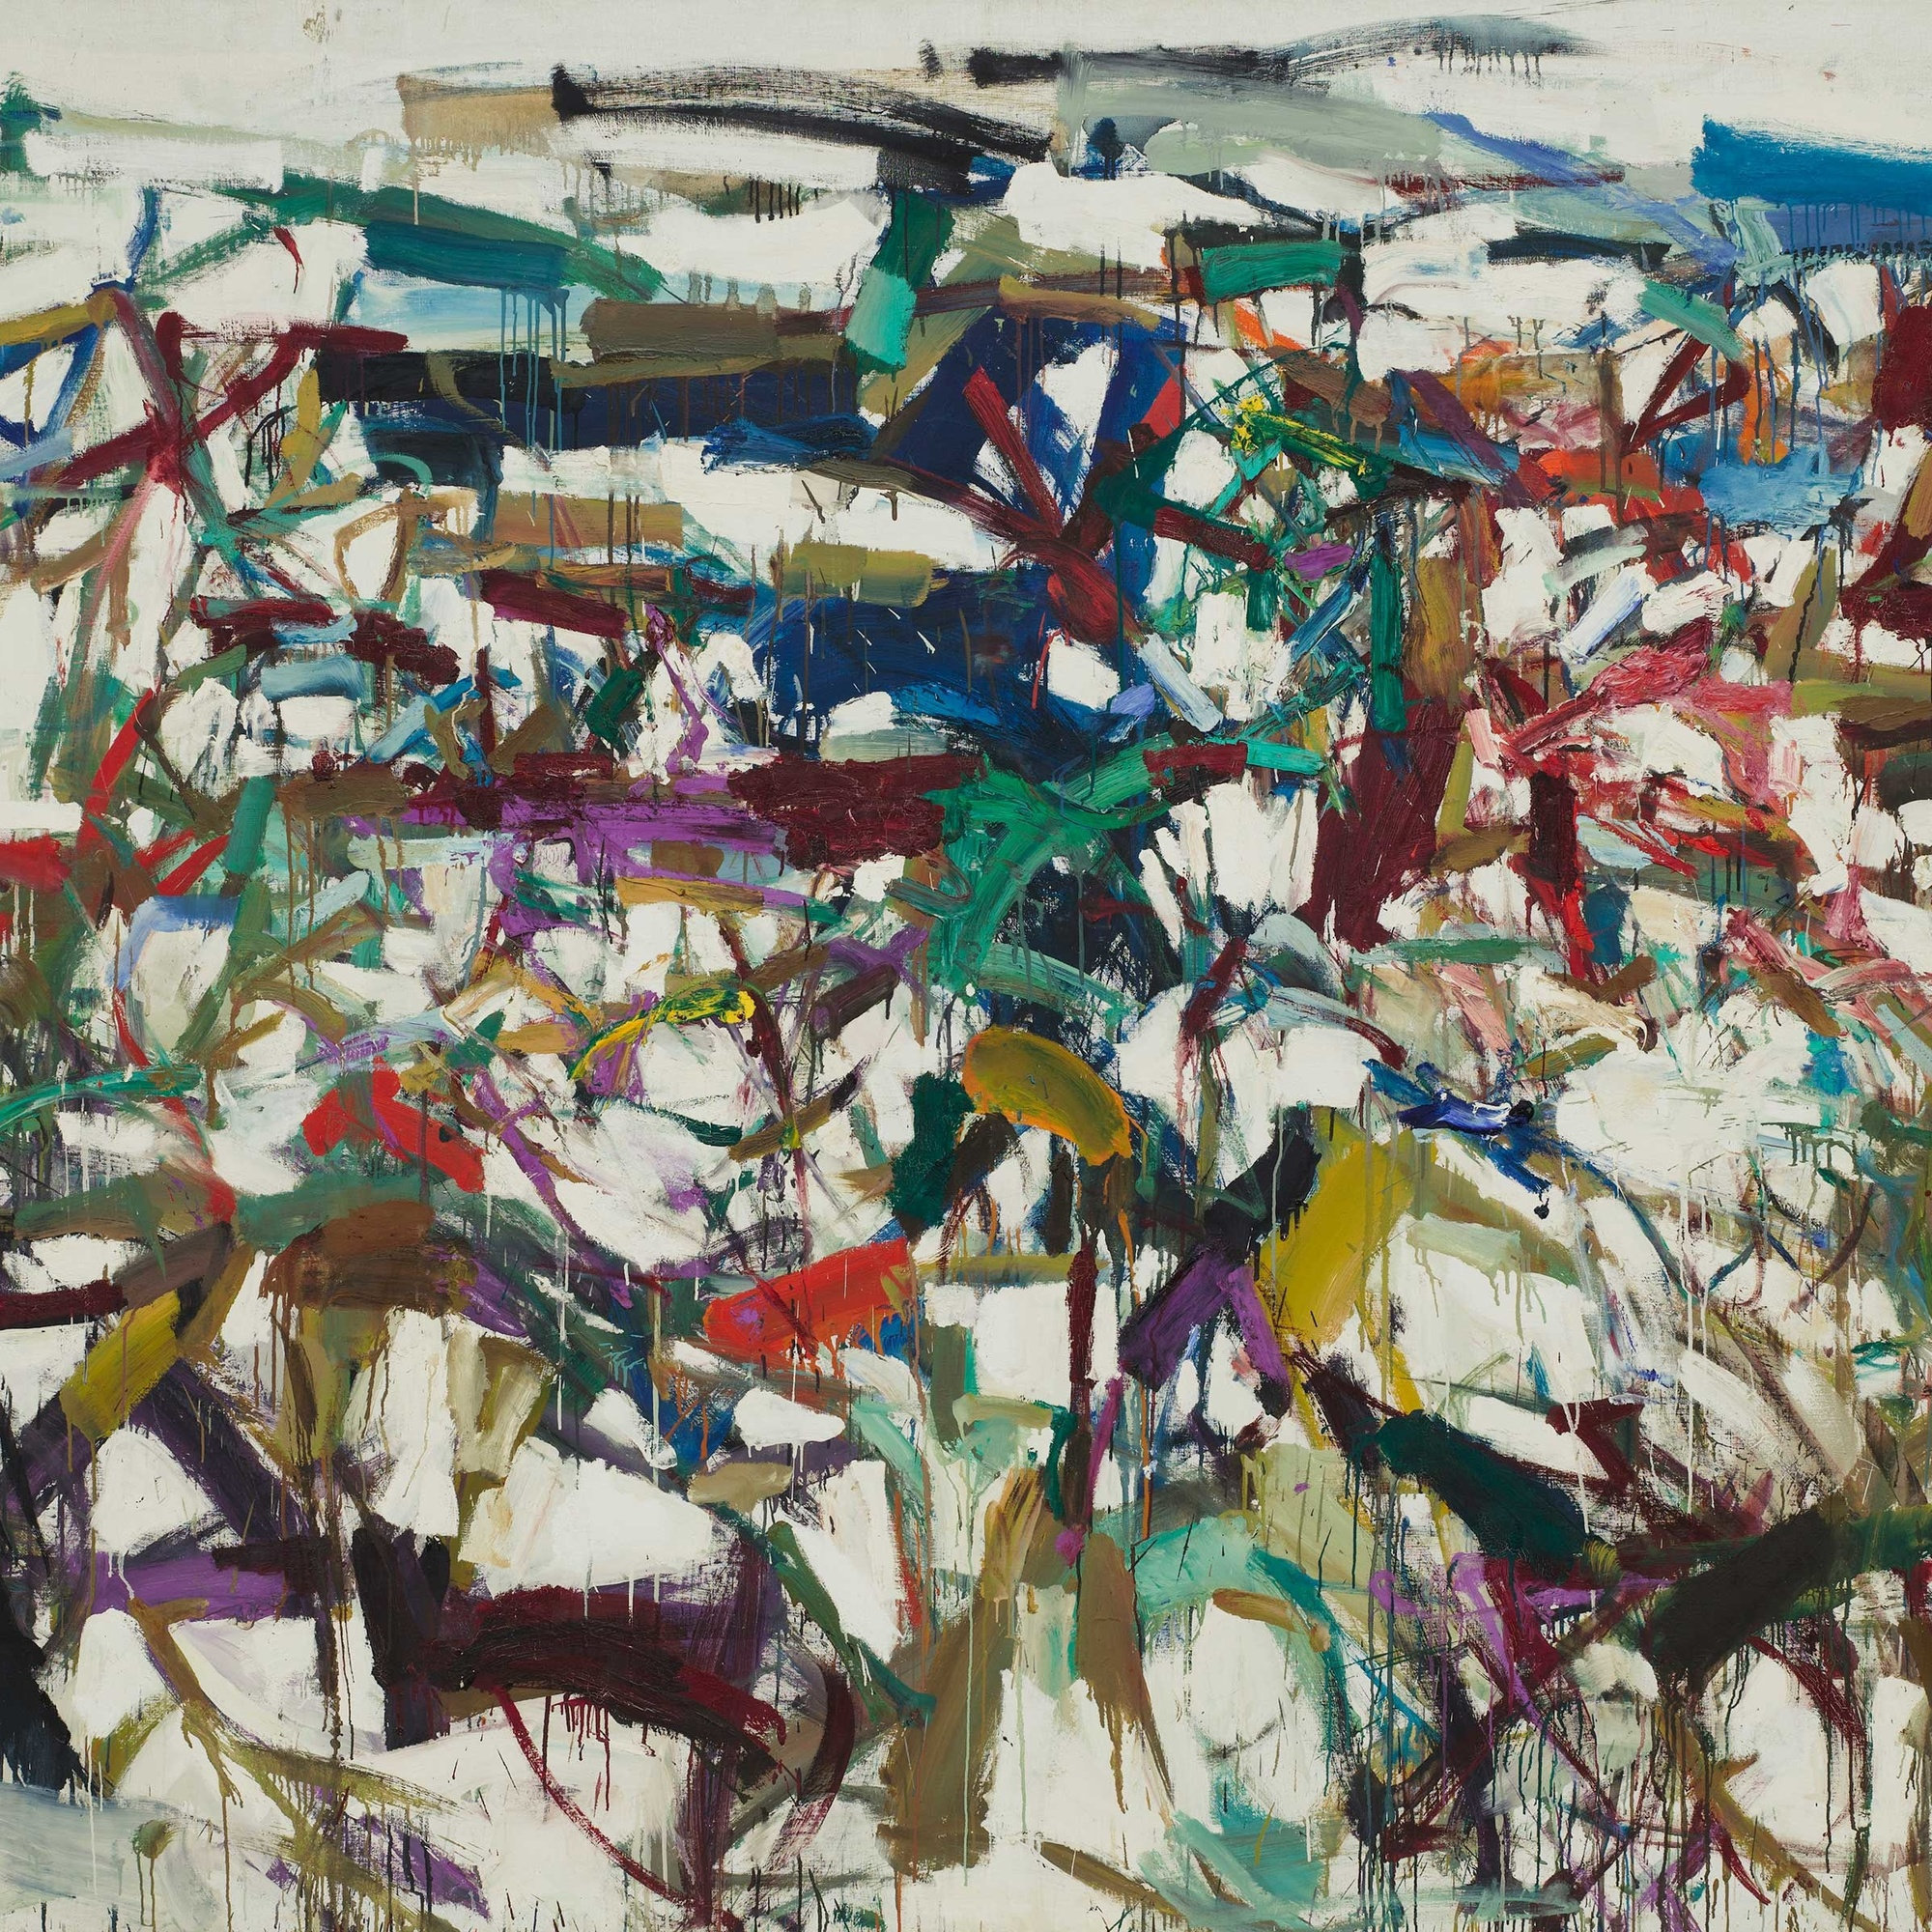 Joan Mitchell at Museum of Modern Art (MOMA) New York